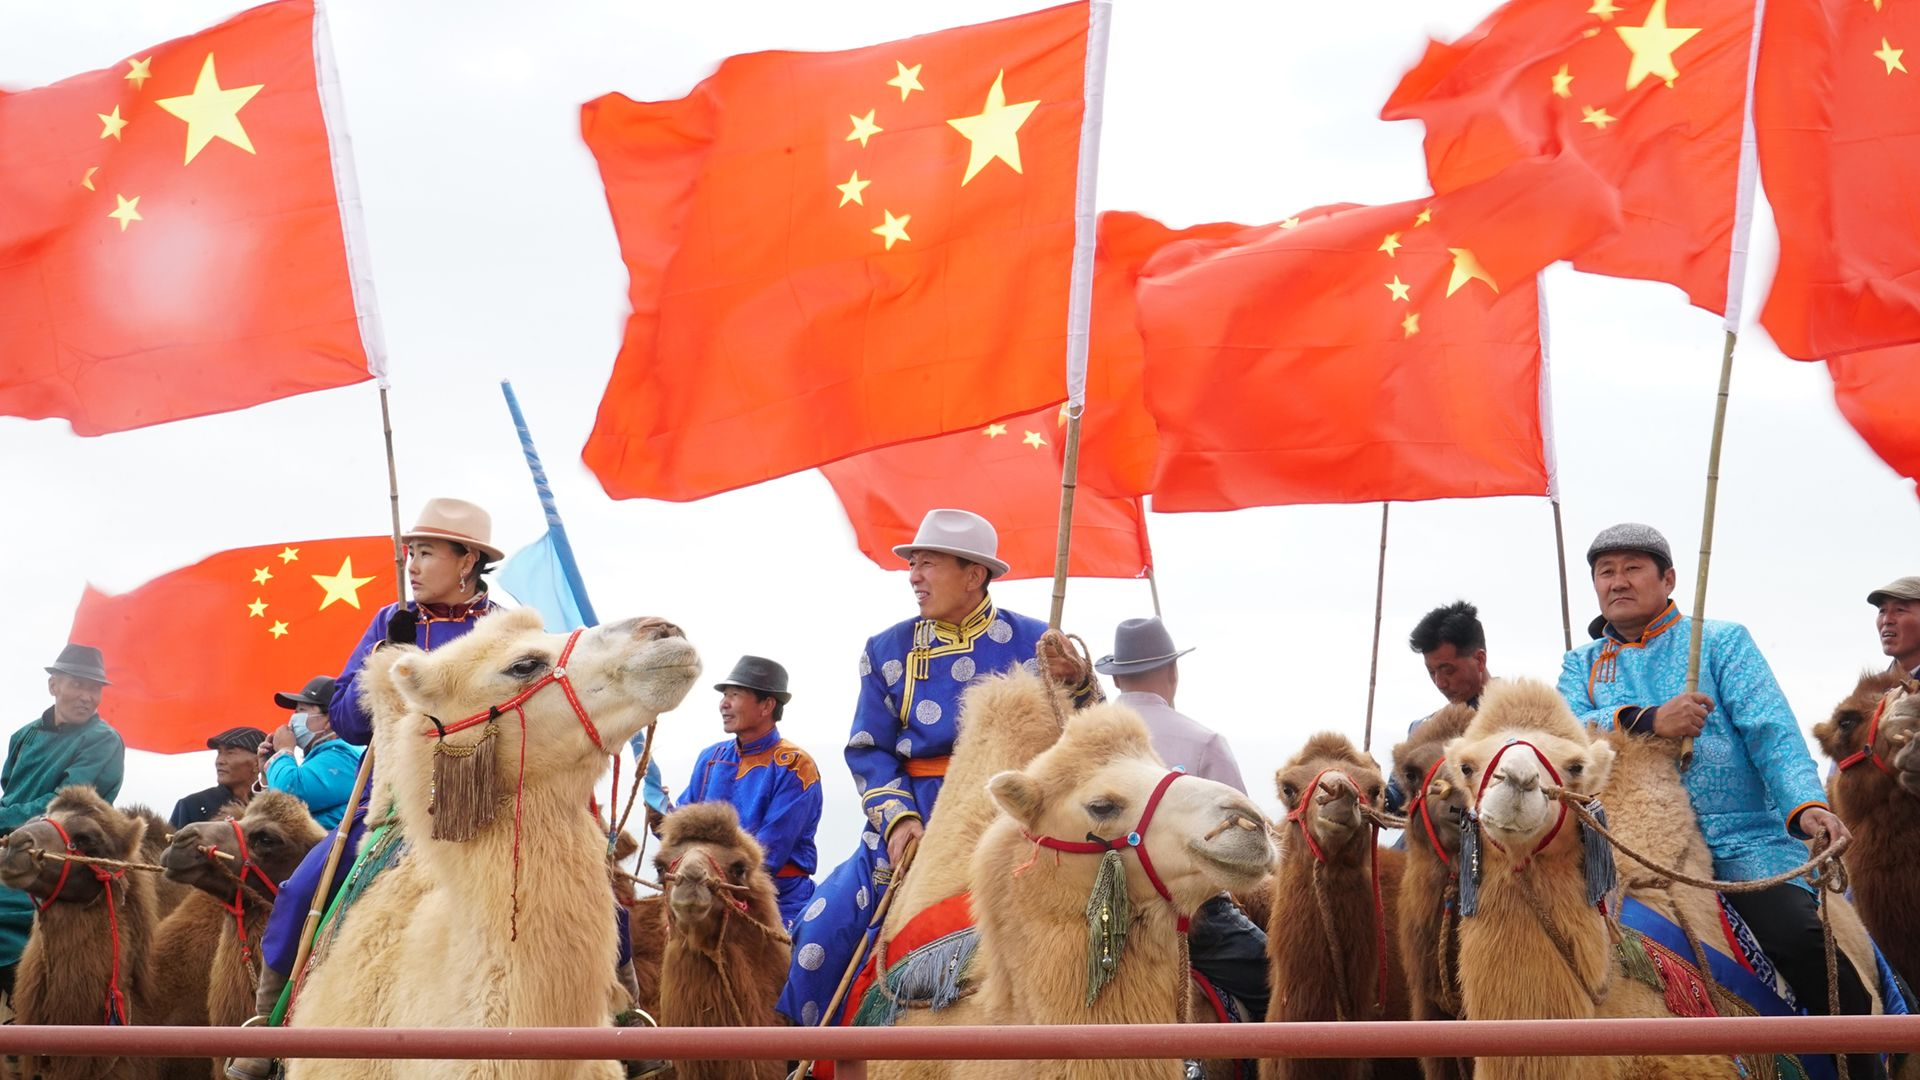 Farmers riding camels waiting for Camels' Festival's opening ceremony. This is from Tracing Heritage [Photo of the day - October 2021]